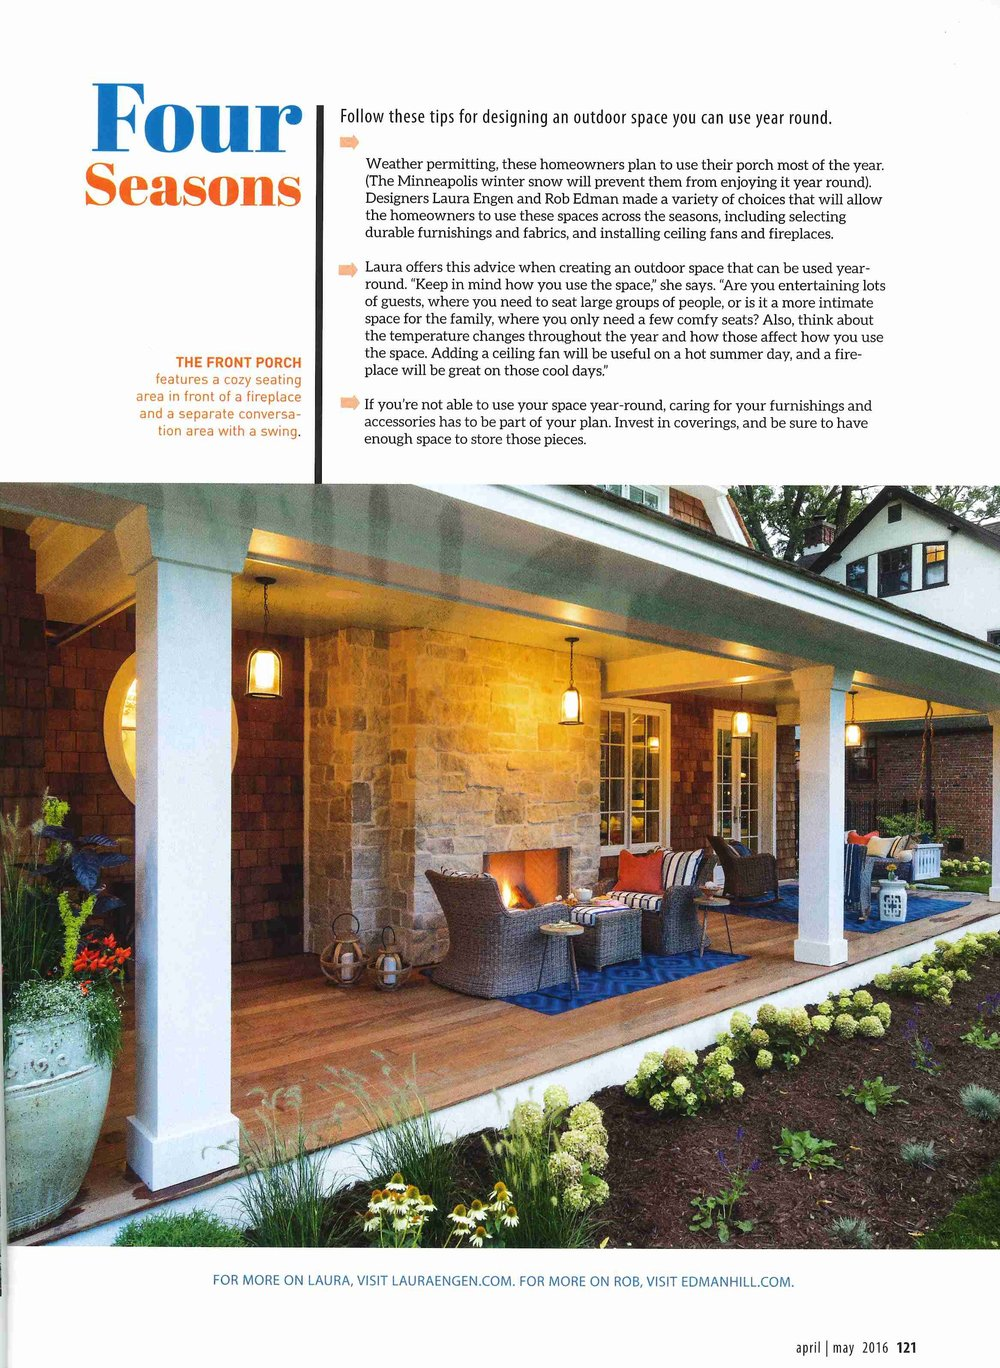 cottages & bungalows pg 121.jpg